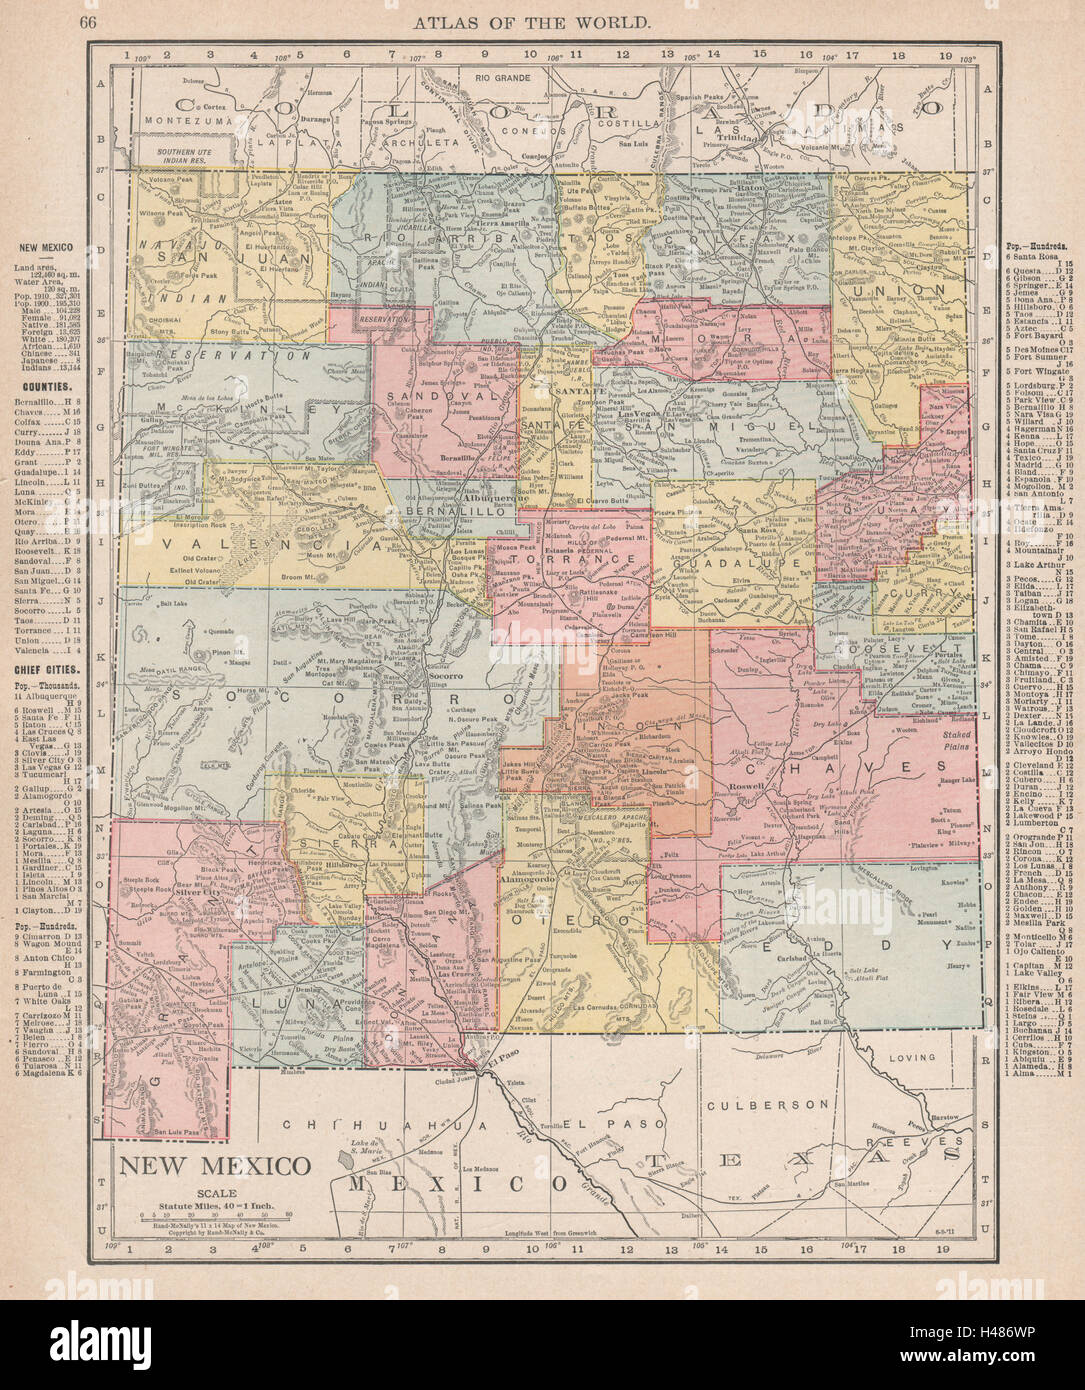 New Mexico state map showing counties RAND MCNALLY 1912 old